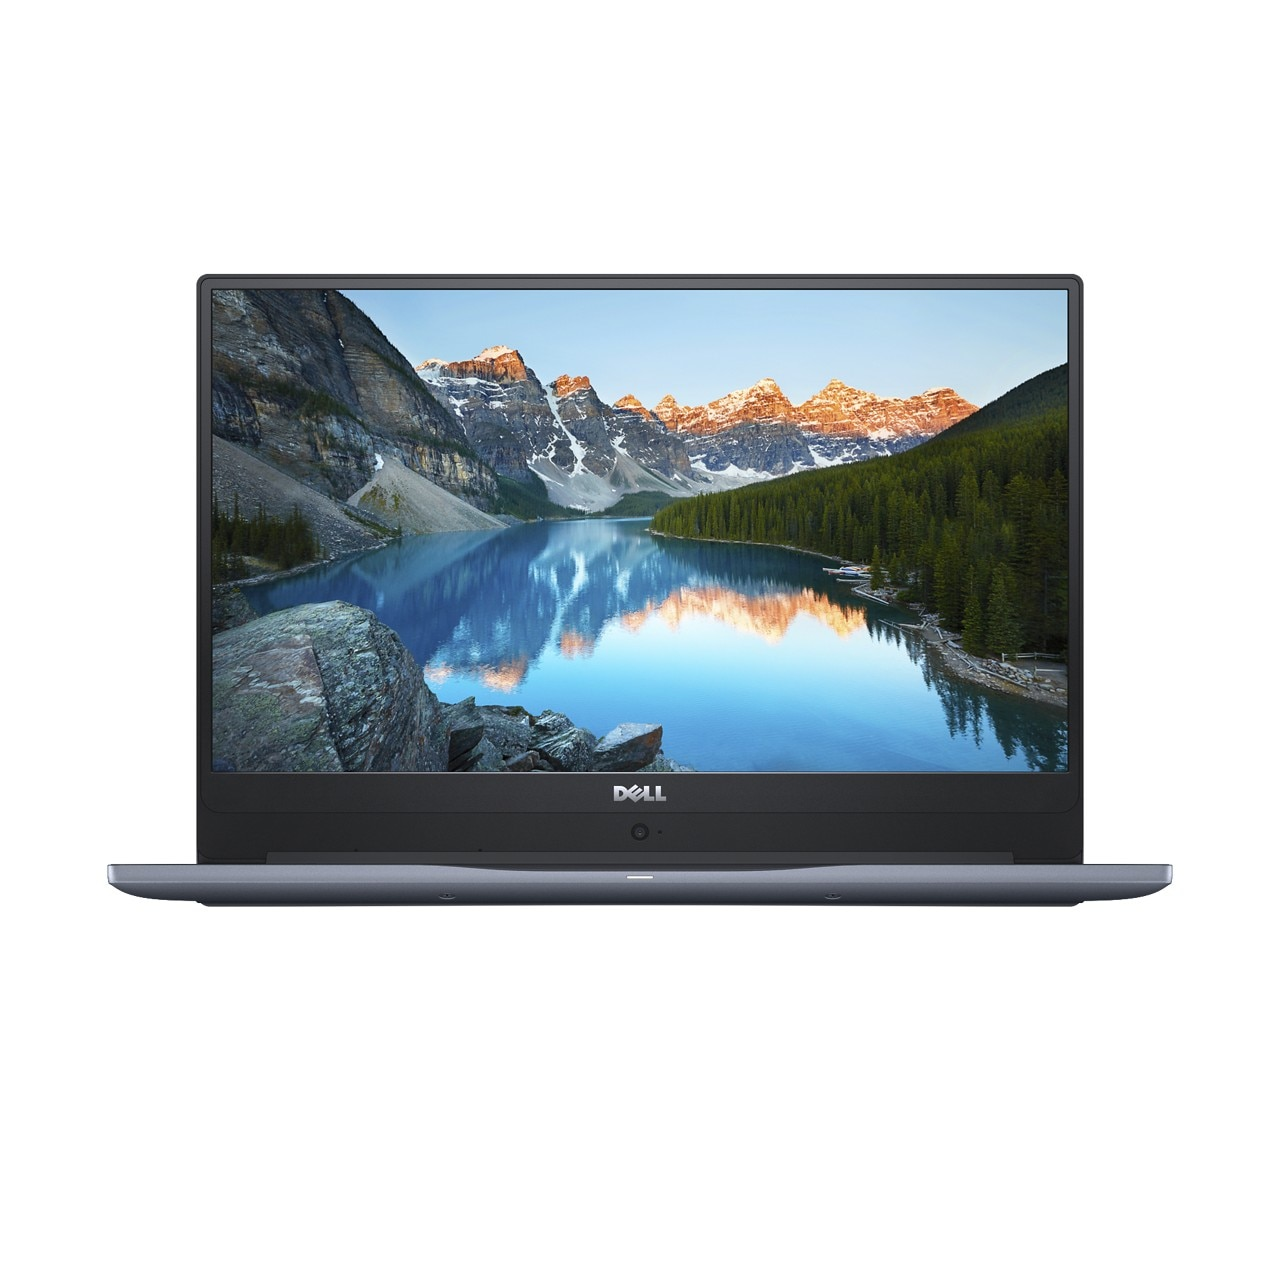 Dell Official Outlet Refurbished Overstock Laptops Desktops Inspiron 15 7567 I5 7300hq 4gb Ddr4 Gtx 1050 Ti Win10 Black 7000 7572